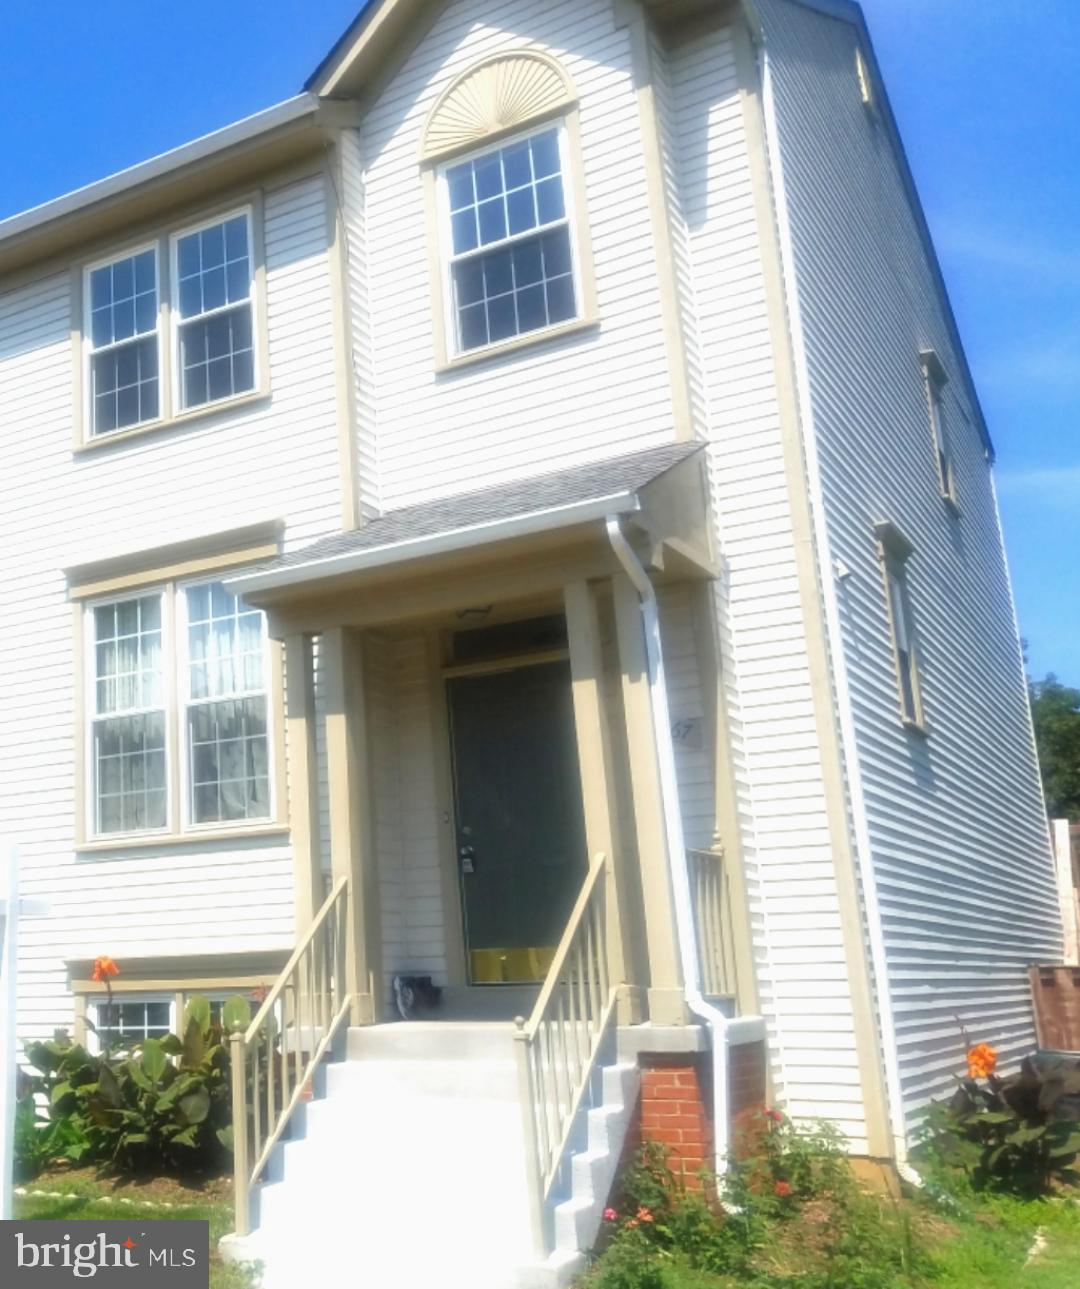 GREAT LOCATION !!Ready to move in 3 Levels, 4 bed., 3.5 Baths Nice       and bright end Townhouse un